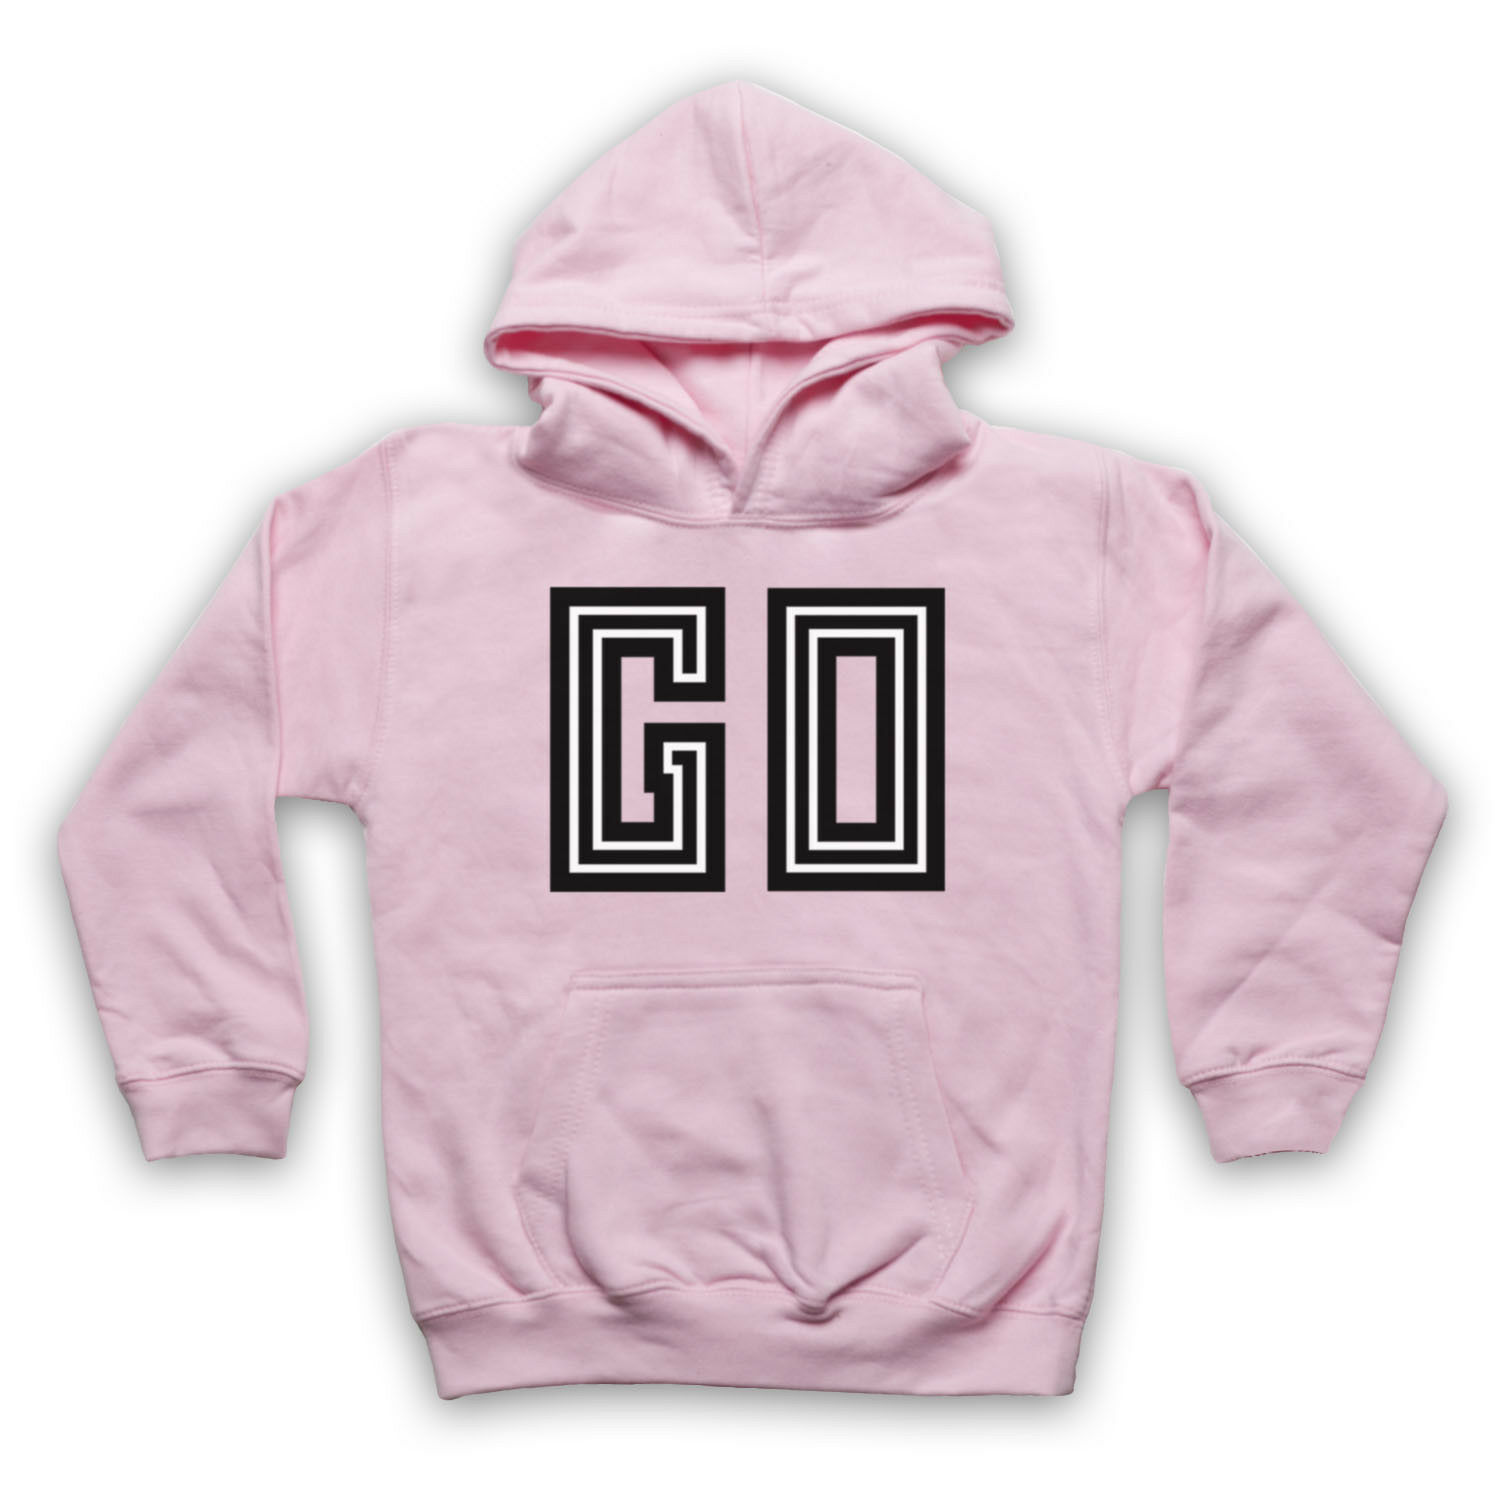 GO MOBY UNOFFICIAL RAVE DANCE DJ DJ DJ ALBUM ELECTRONICA LOGO ADULTS & KIDS HOODIE | Billig